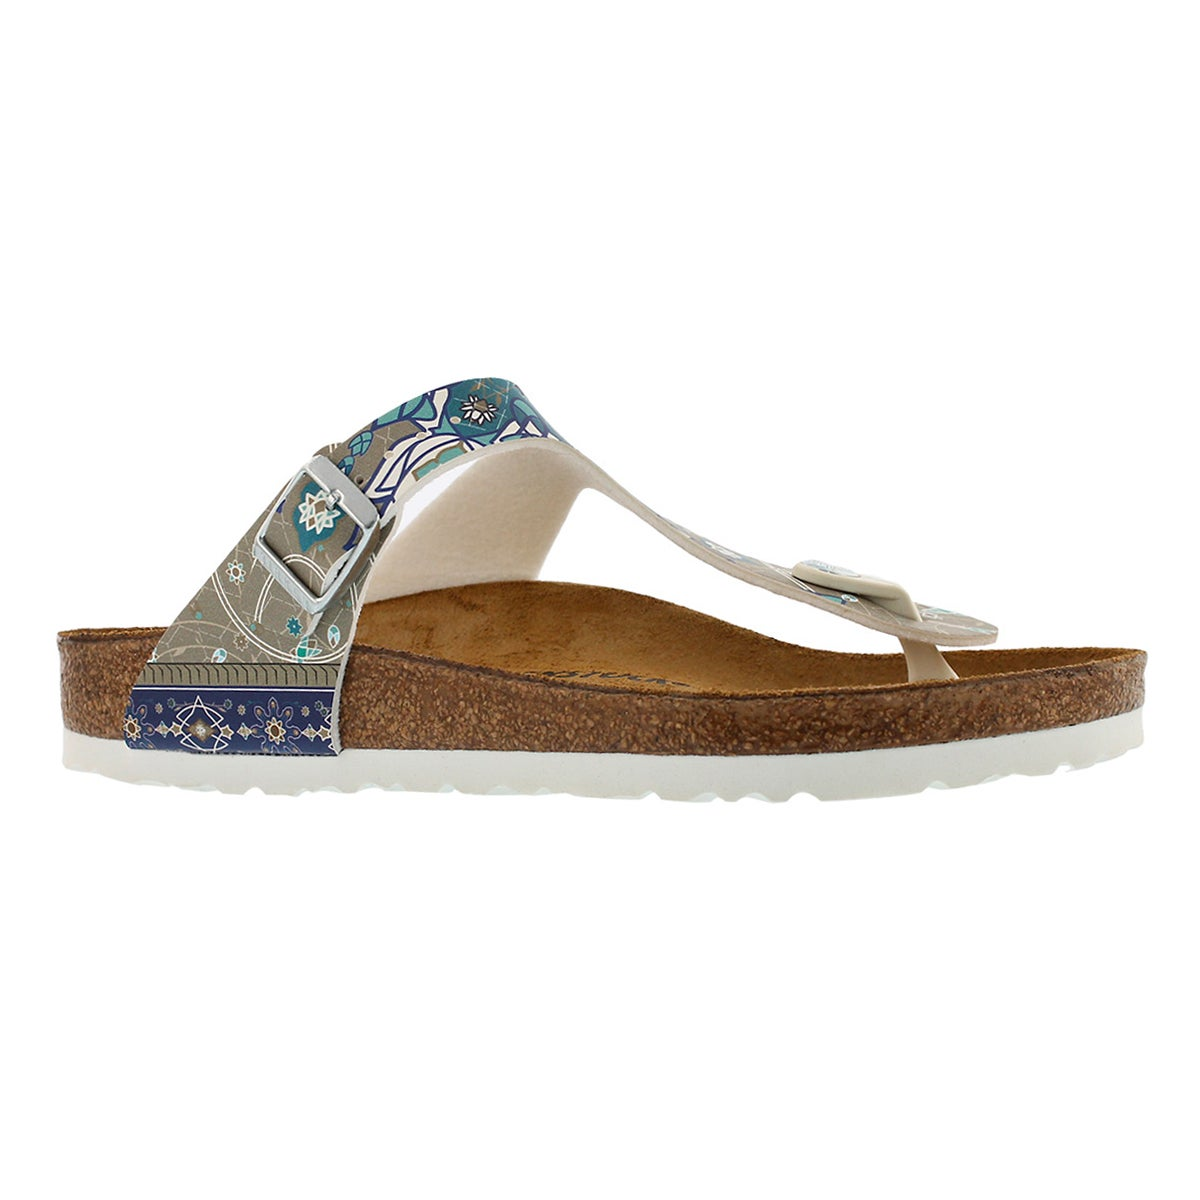 Women's GIZEH BF ancient mosaic sandals